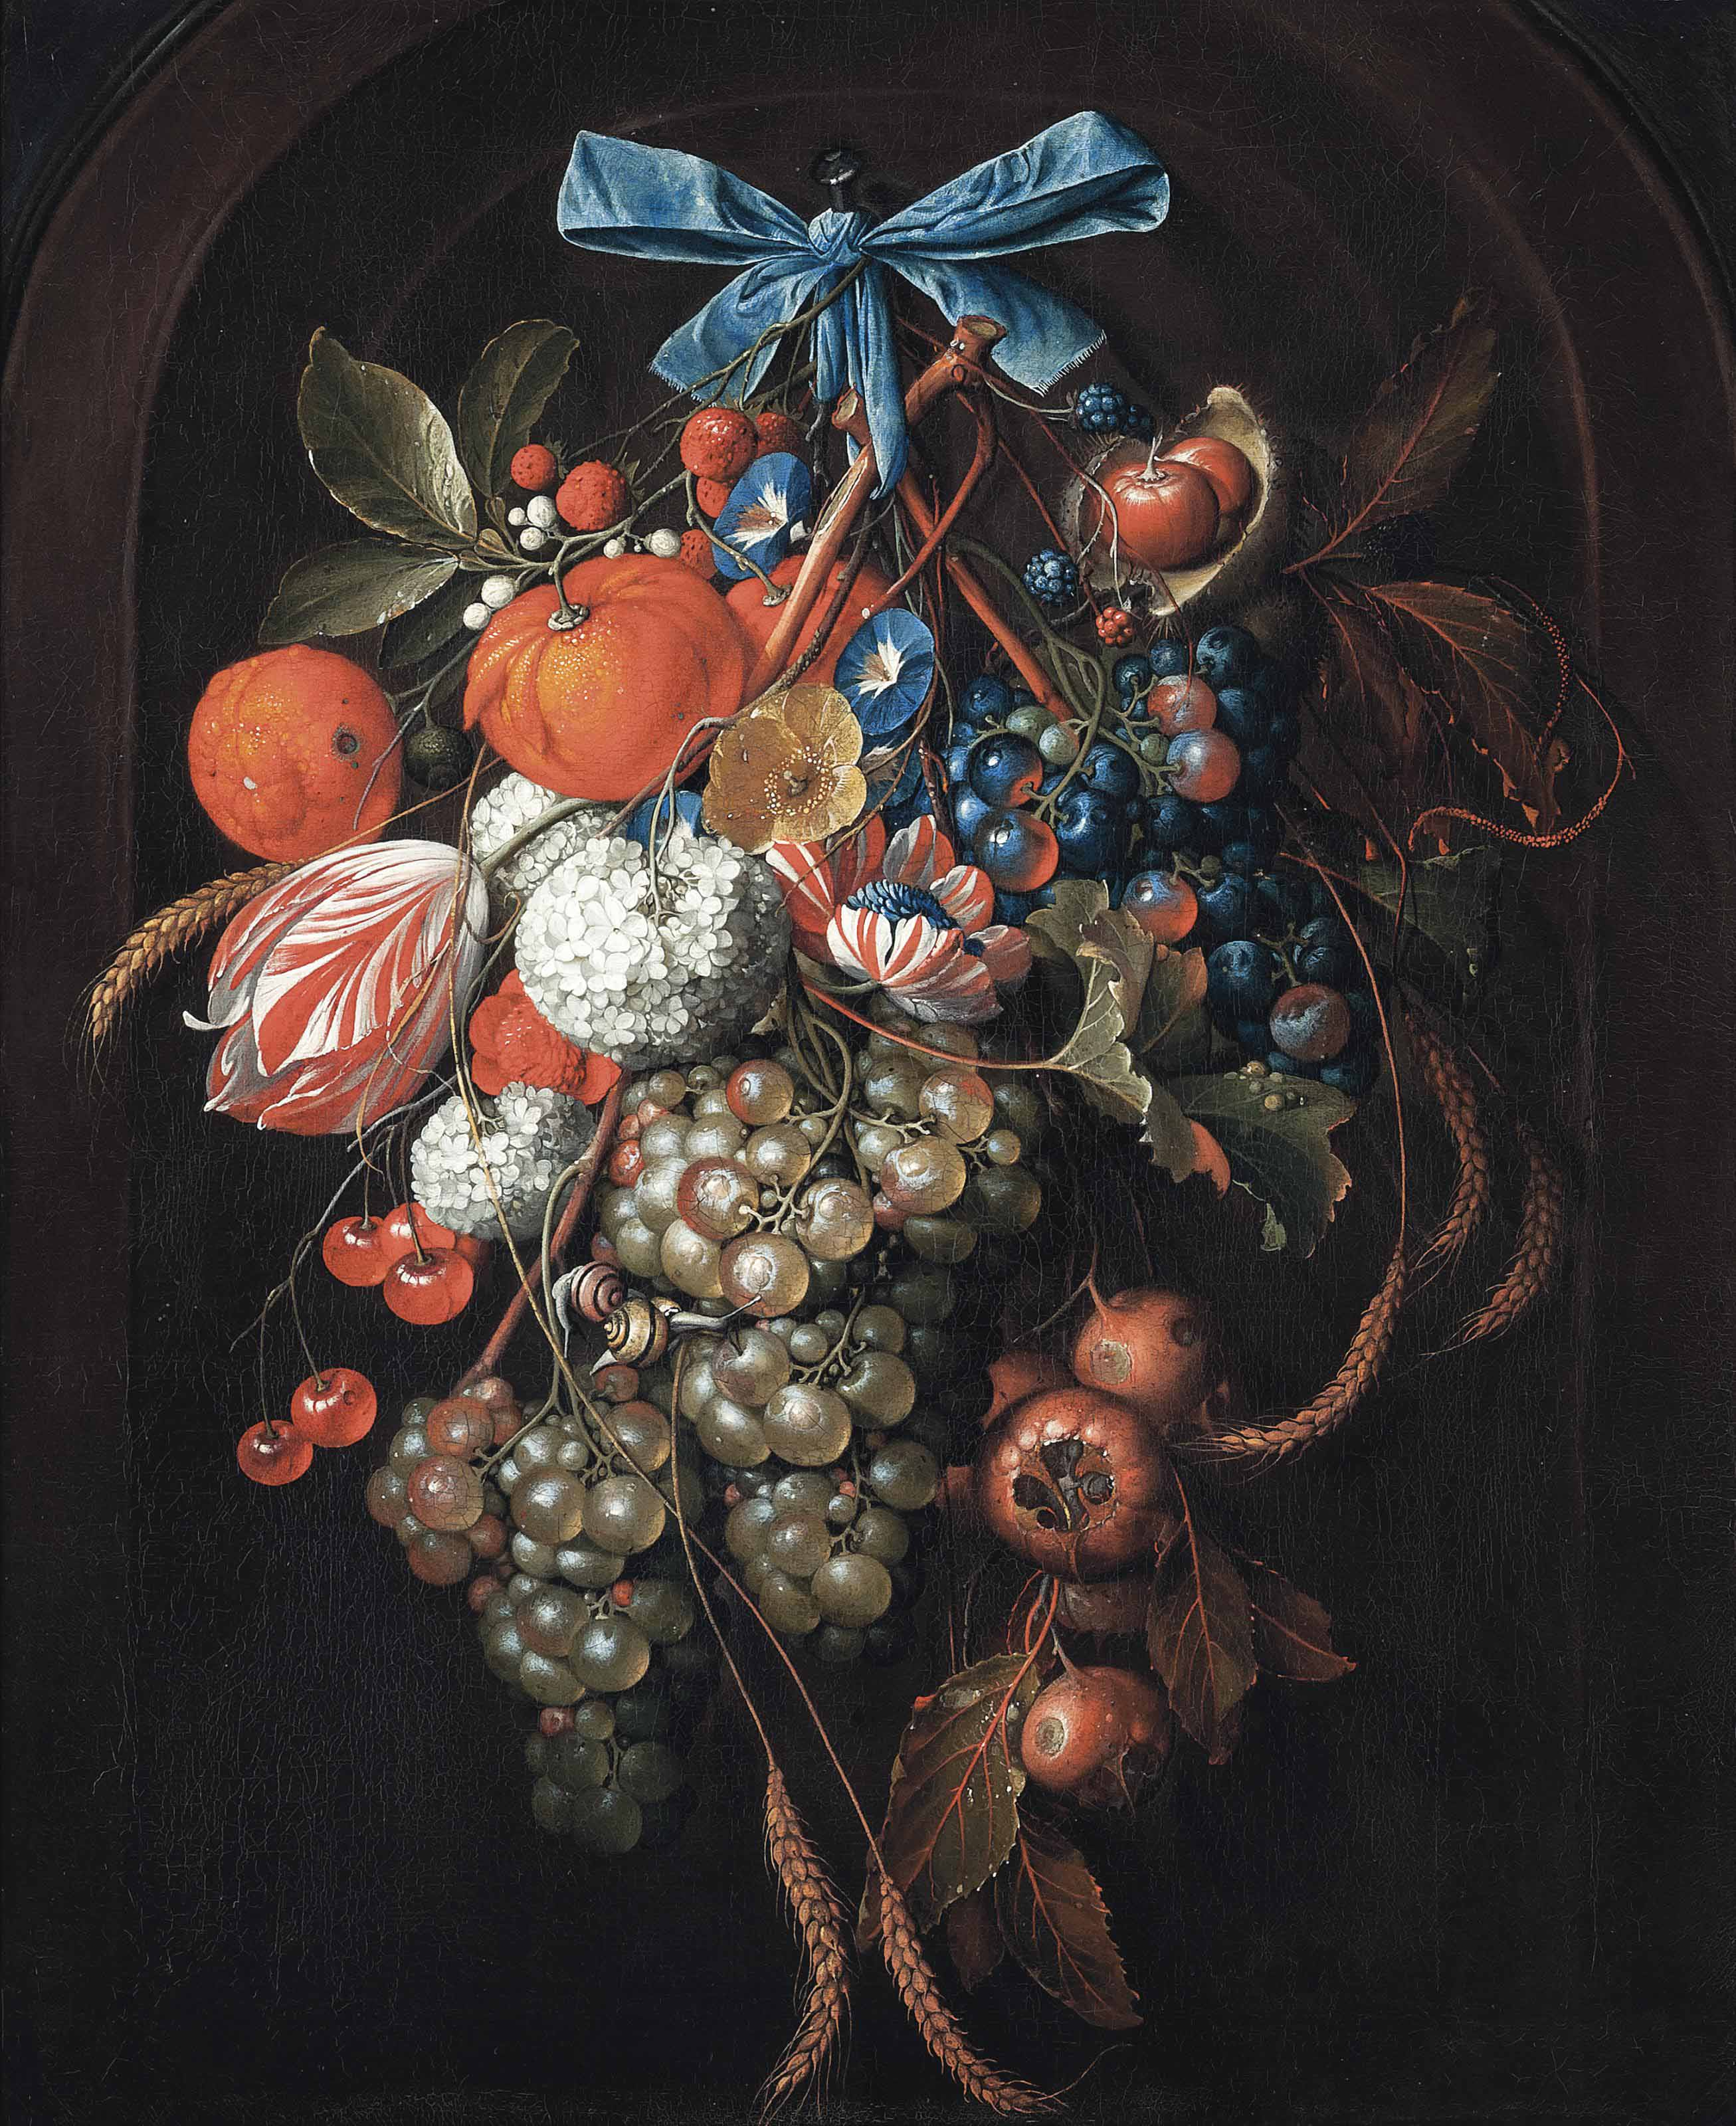 Hydrangeas, morning glories, a parrot tulip and other flowers with grapes, oranges, cherries, blackberries, ears of corn, loquats, and chestnuts, with two snails, hanging from a blue bow in a feigned arched stone niche